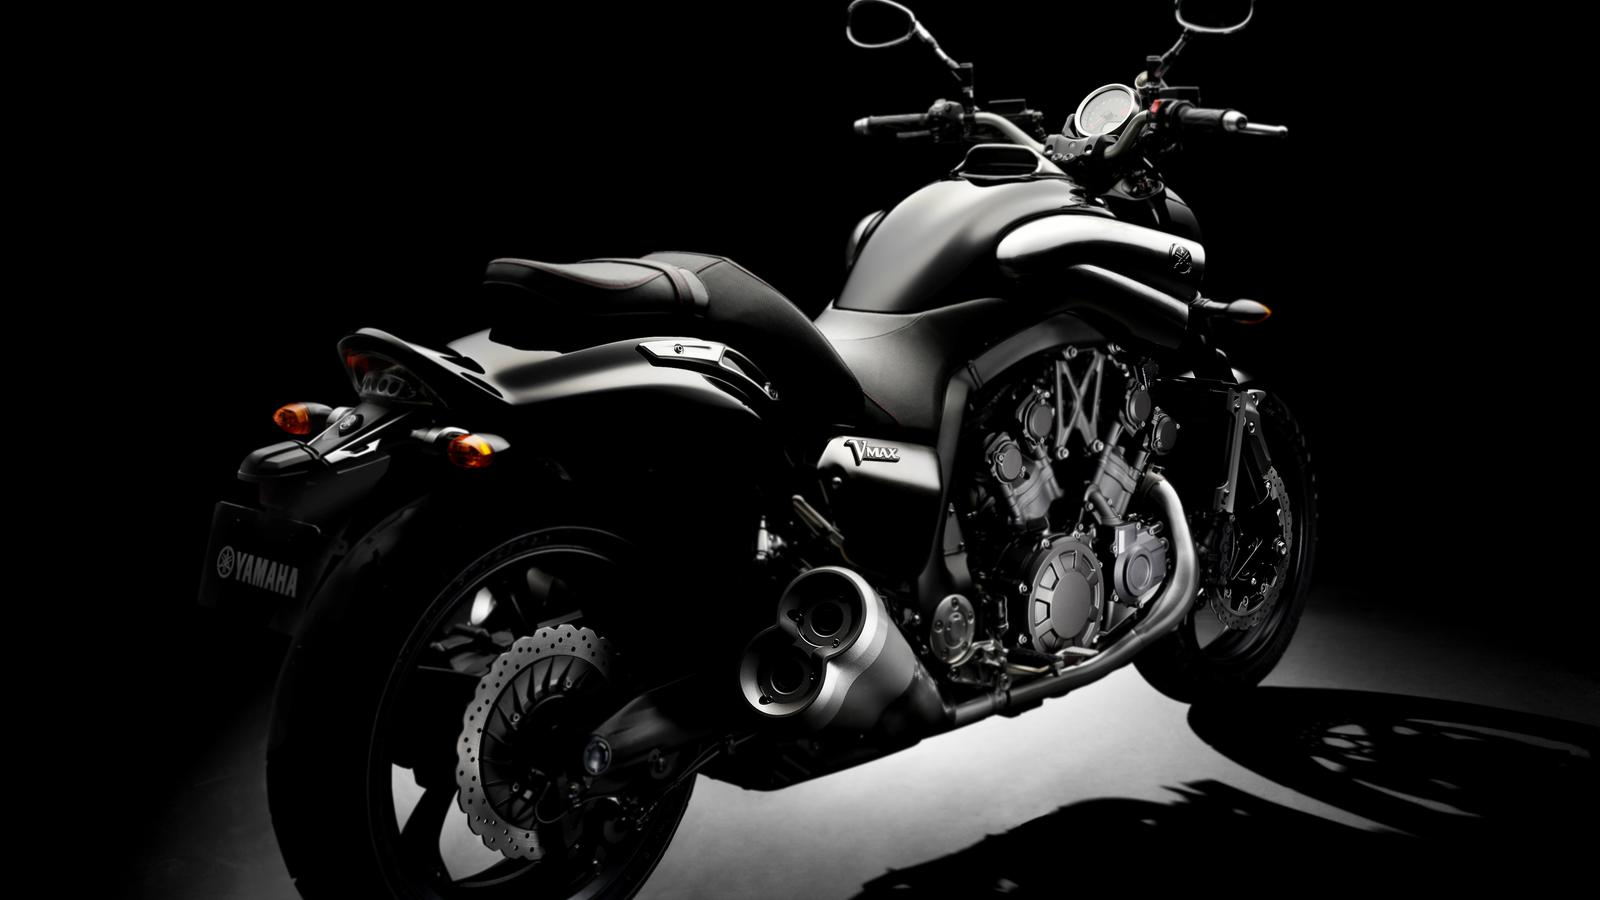 2015 Yamaha Vmax Wallpaper Full HD